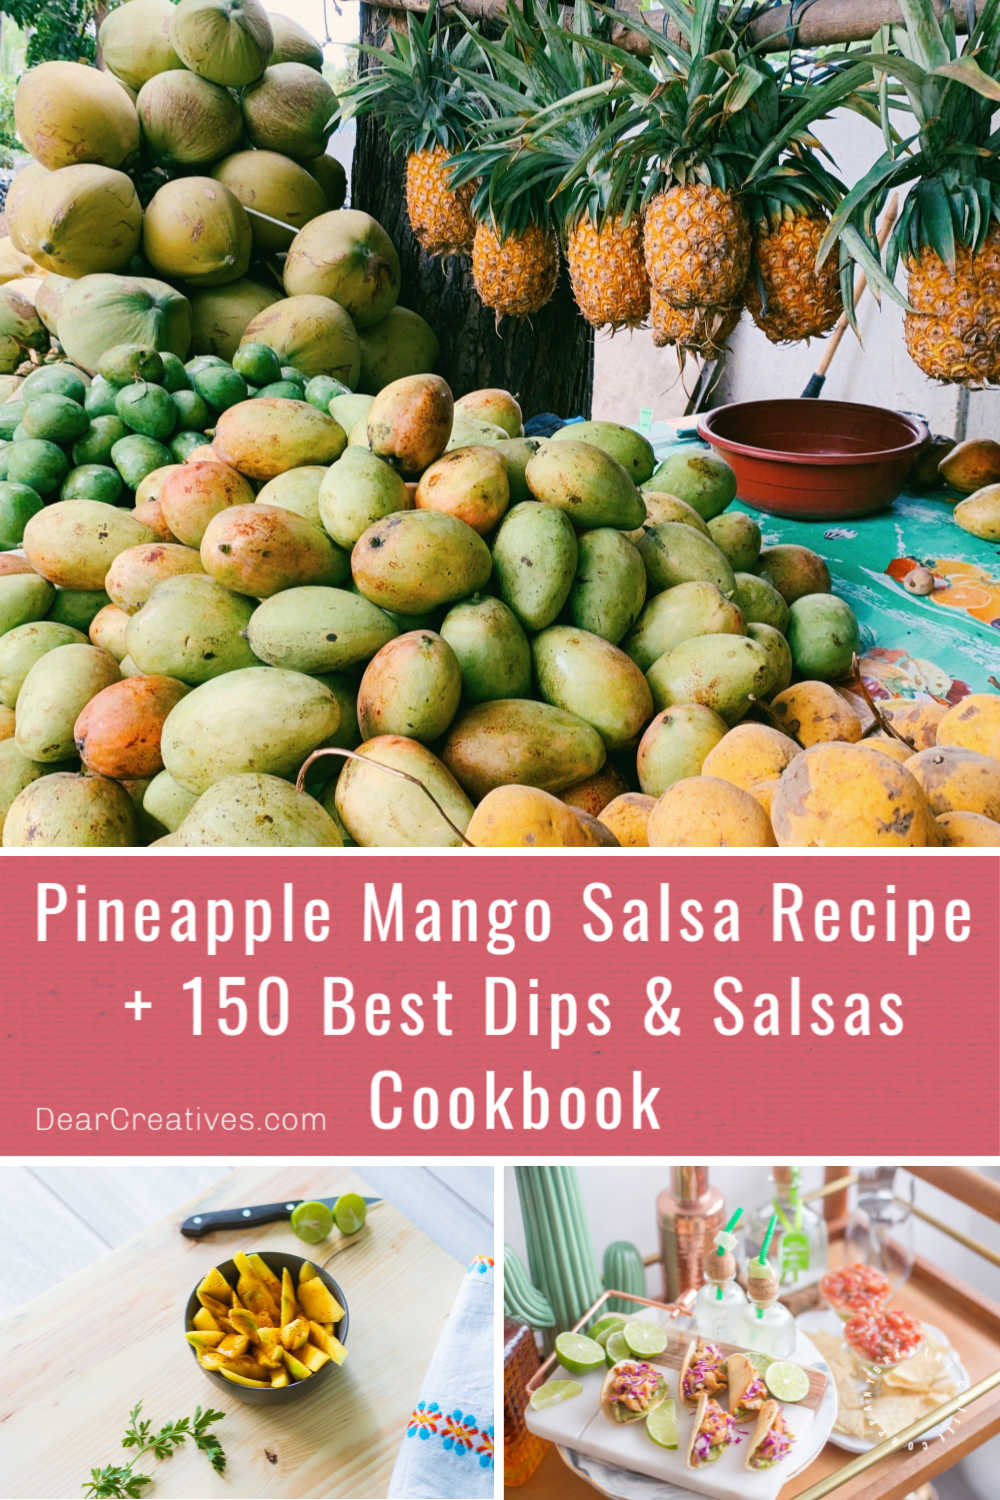 Pineapple Mango Salsa + 150 Best Dips & Salsa Cookbook